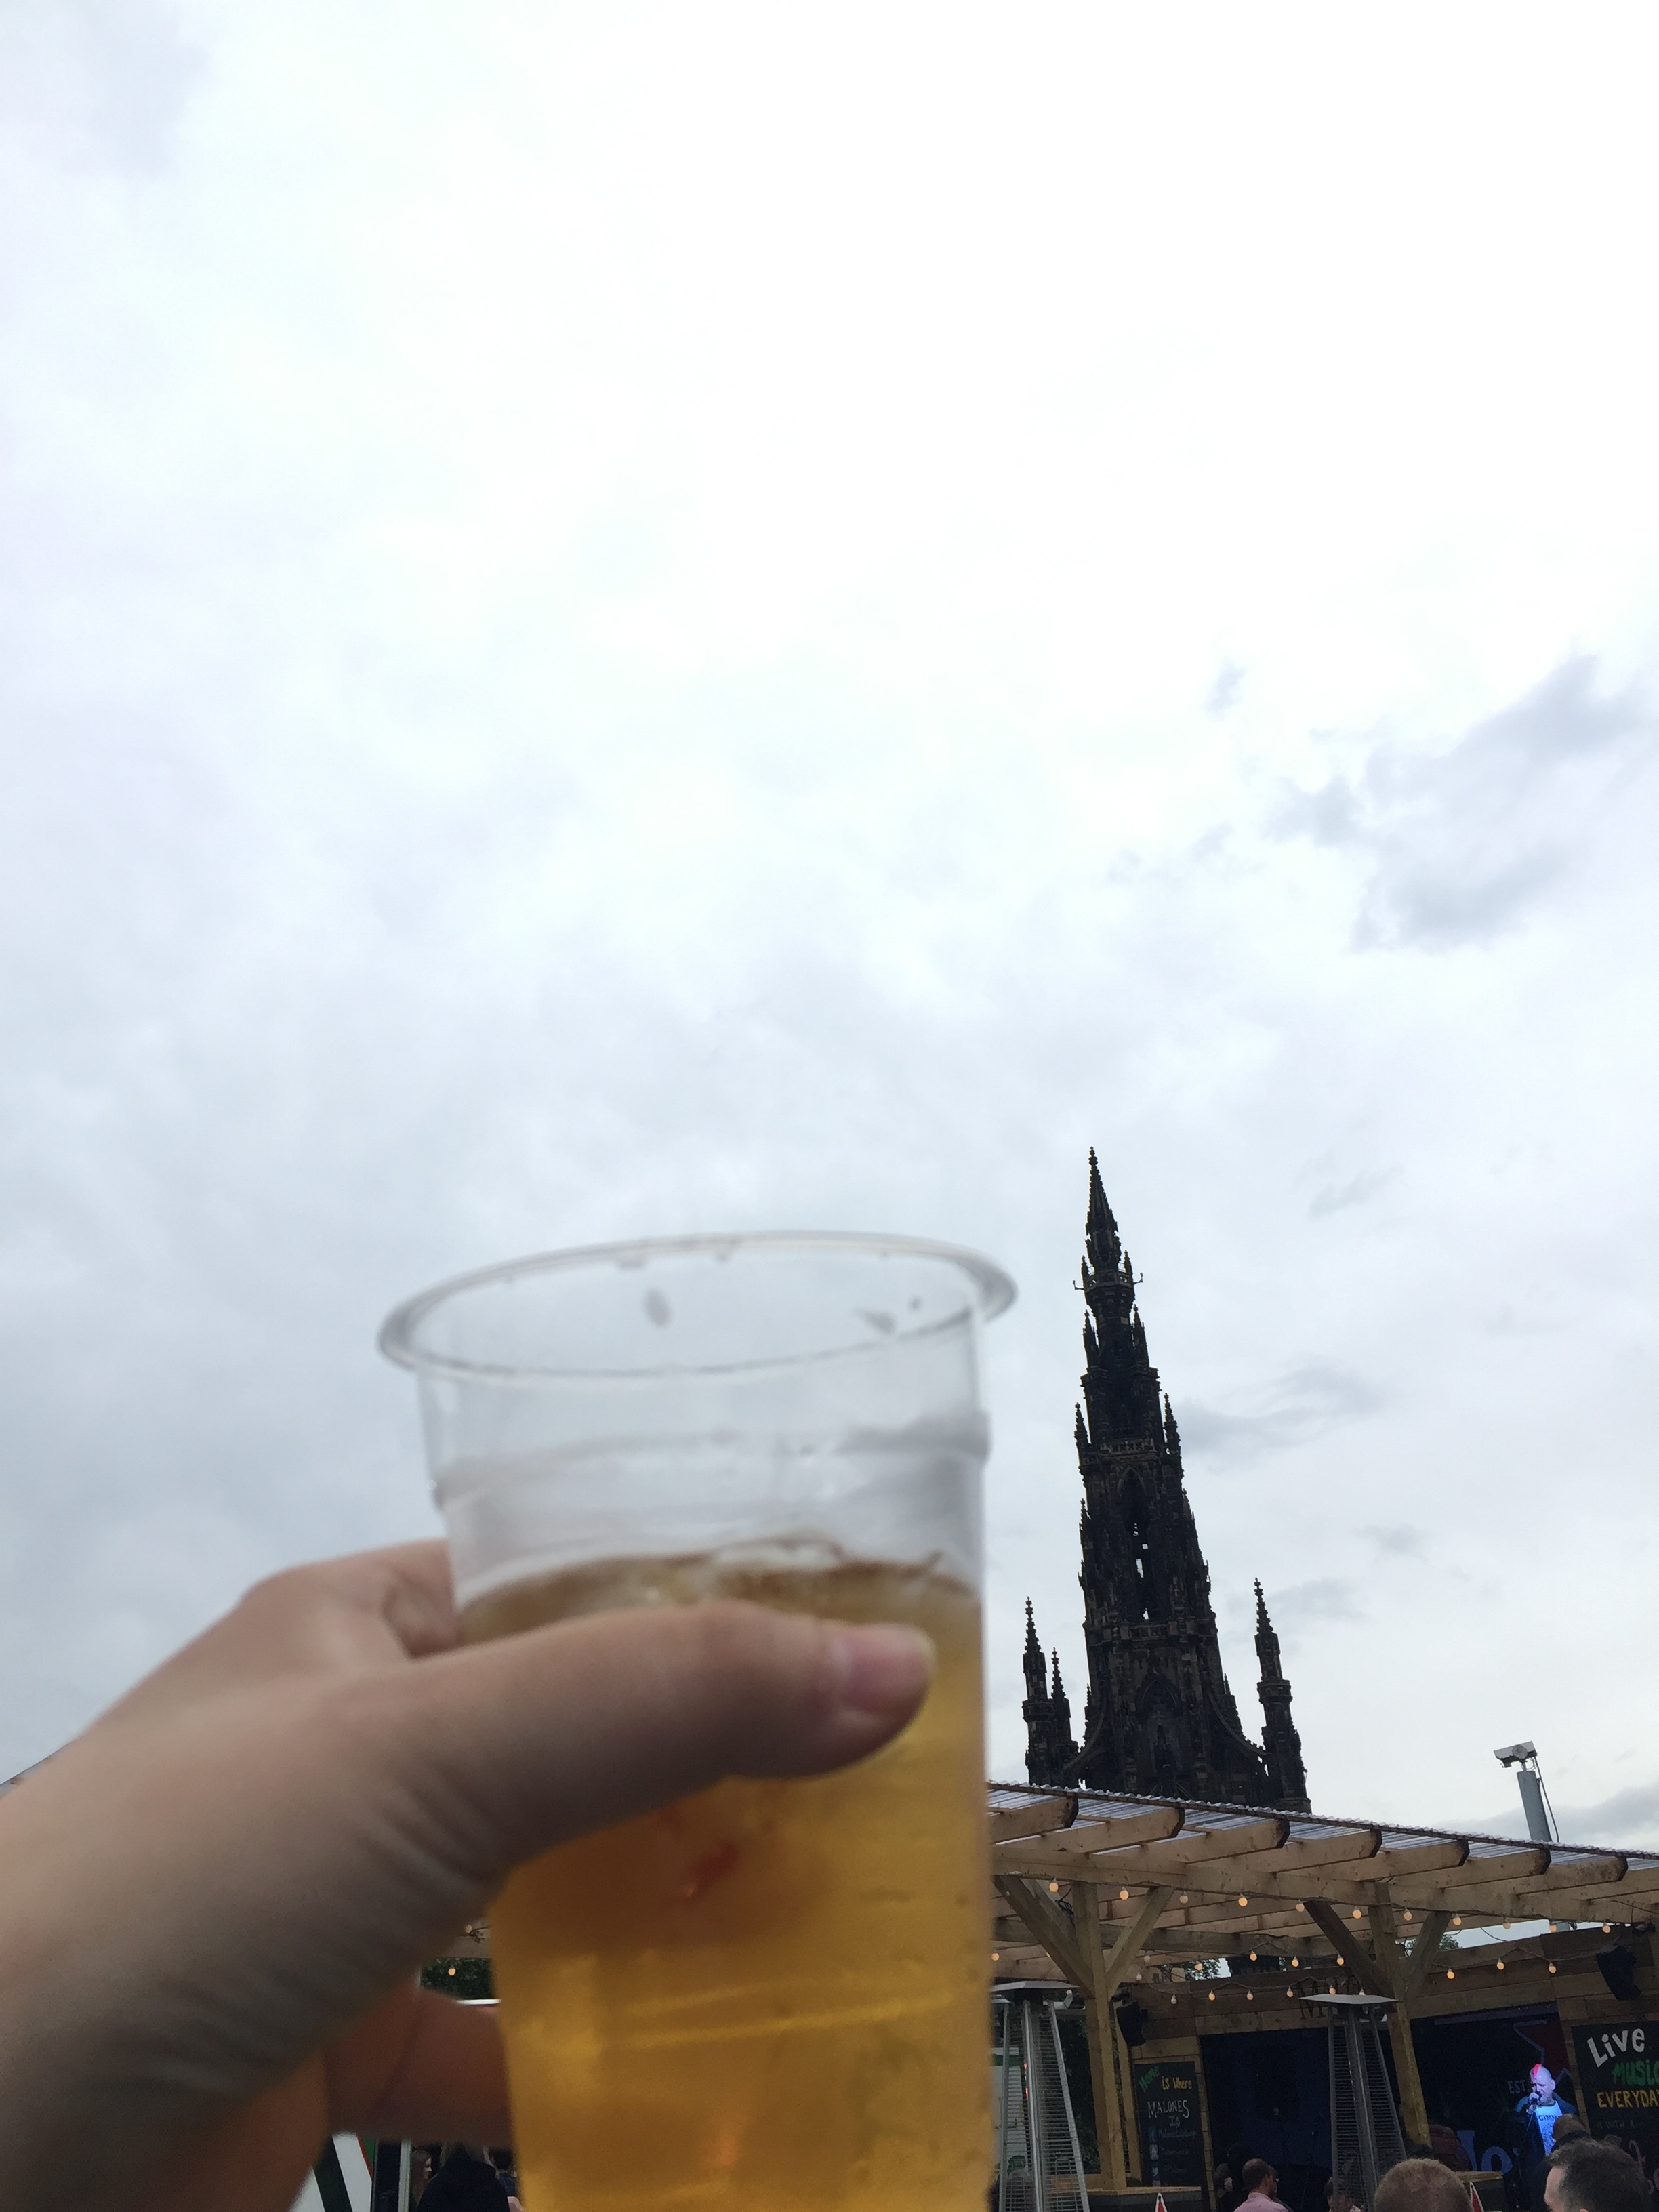 Cider, Scottish punk bands, and the Scott Monument